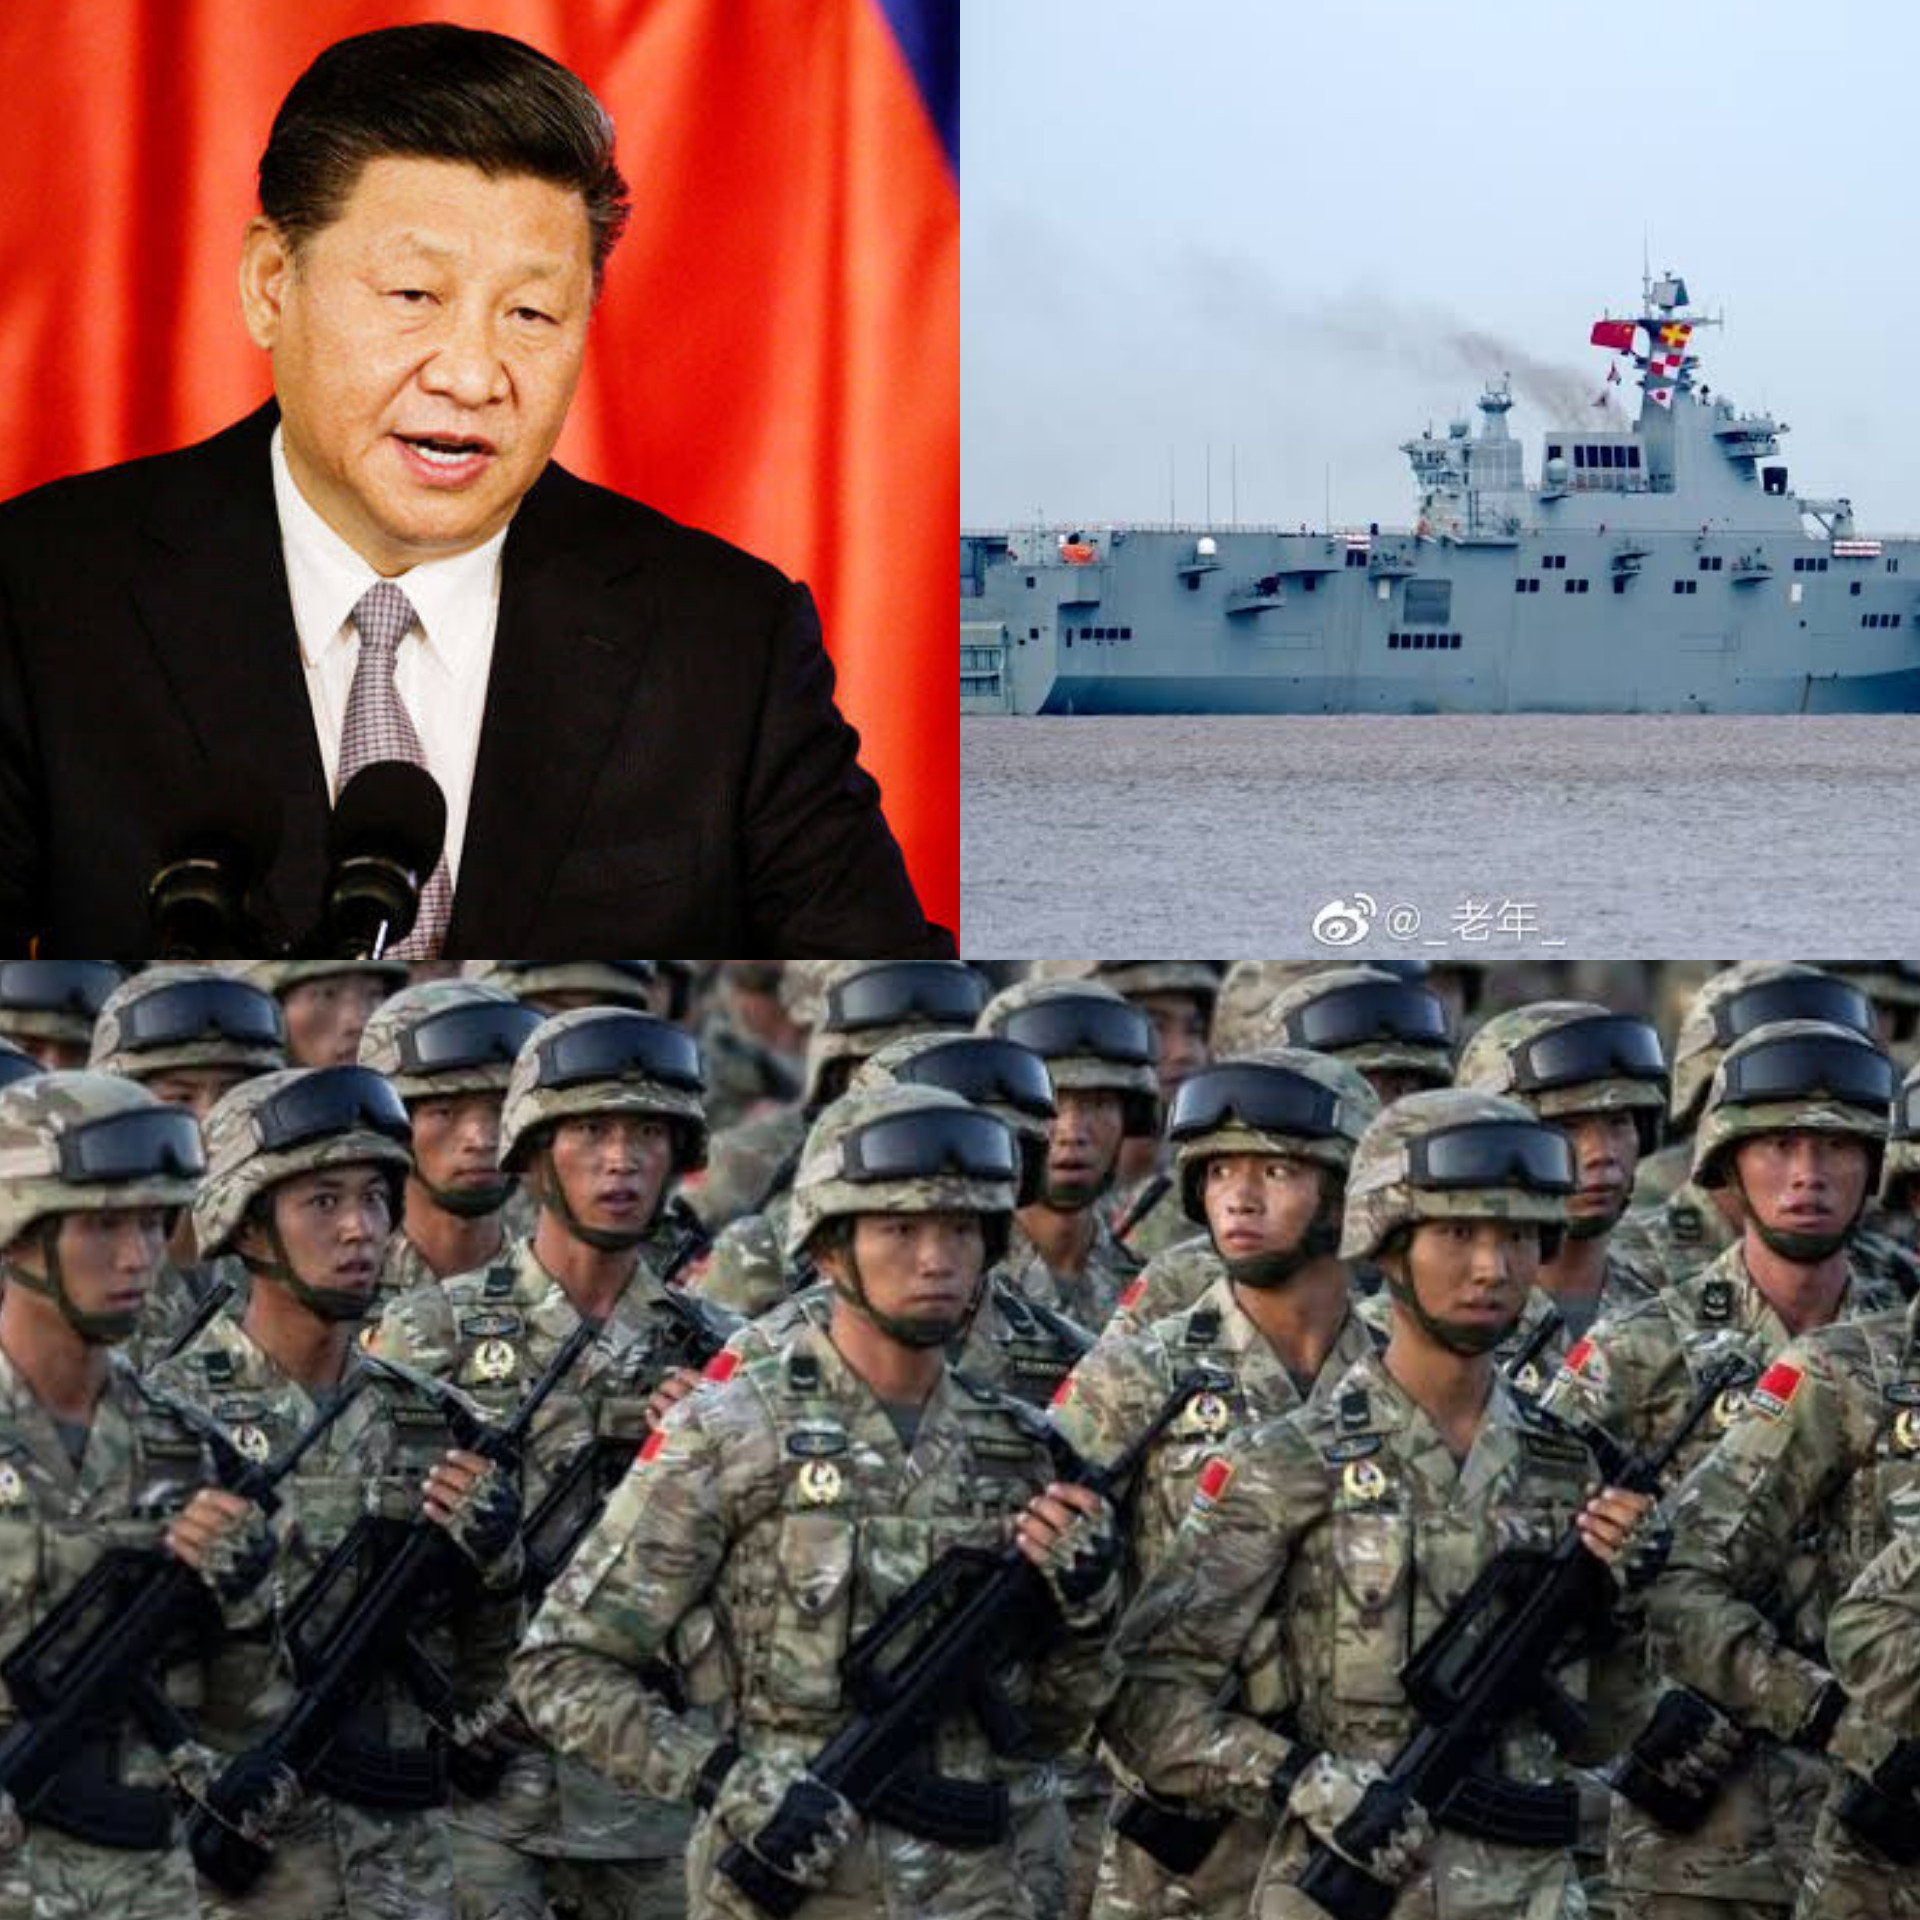 China plans to overwhelm and takeover Taiwan with it's military within the next six years - US military warns